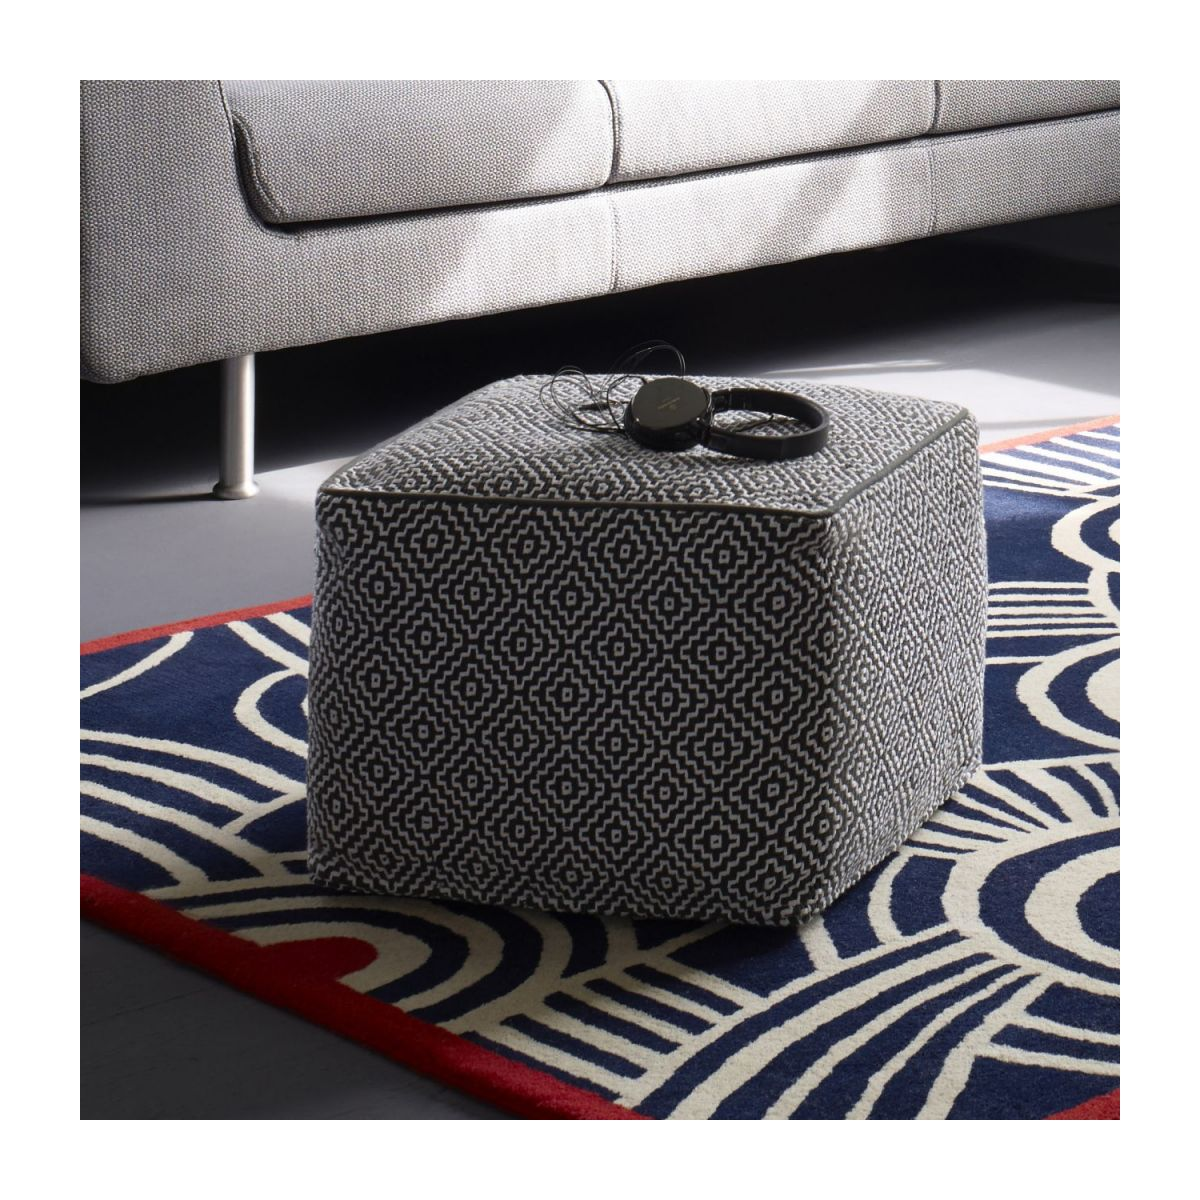 Footstool with black and white patterns n°7